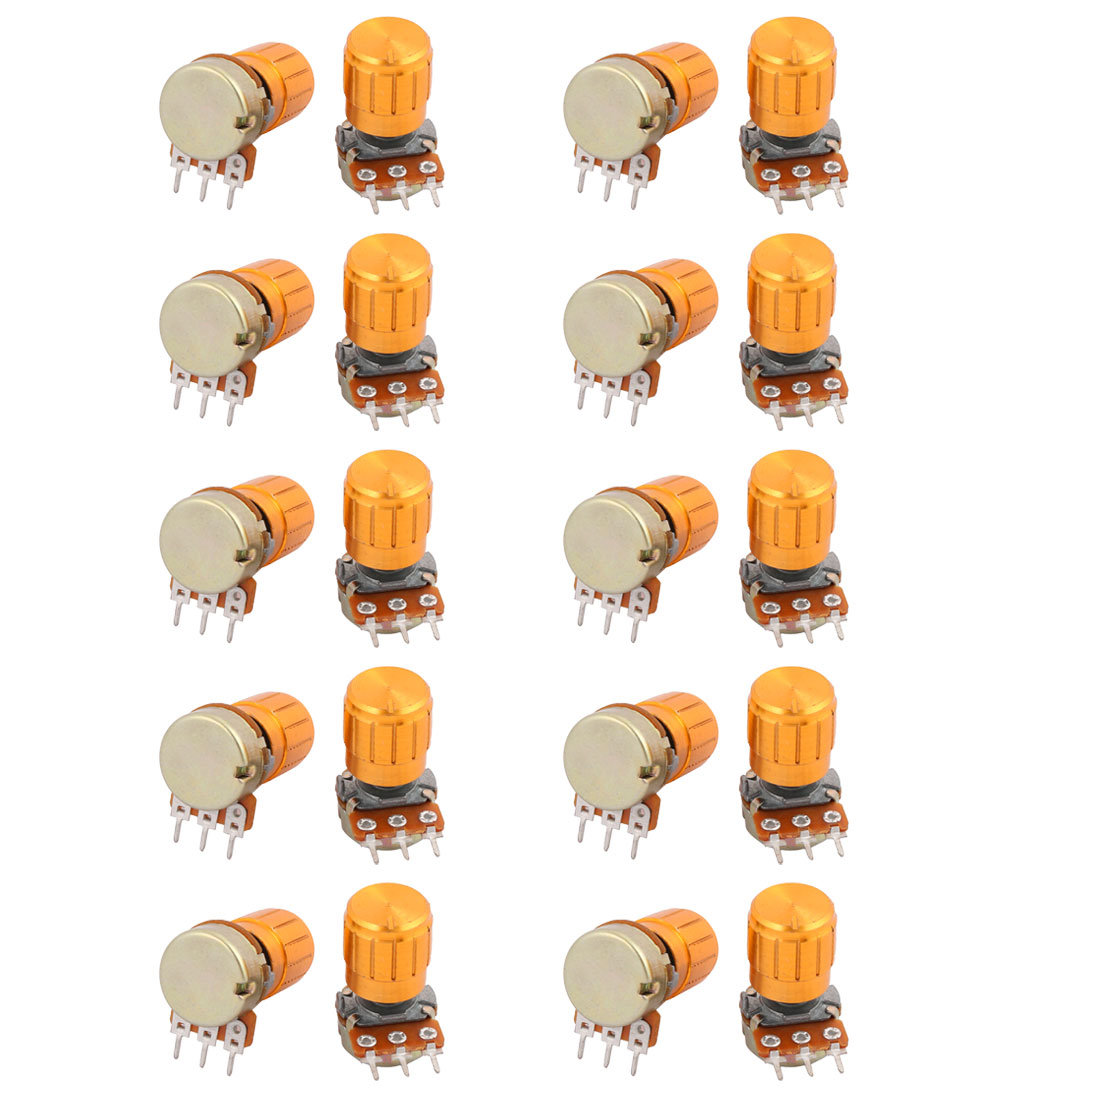 20Pcs WH148 100K Ohm 3 Terminals Rotary Linear Taper Potentiometer with Knob